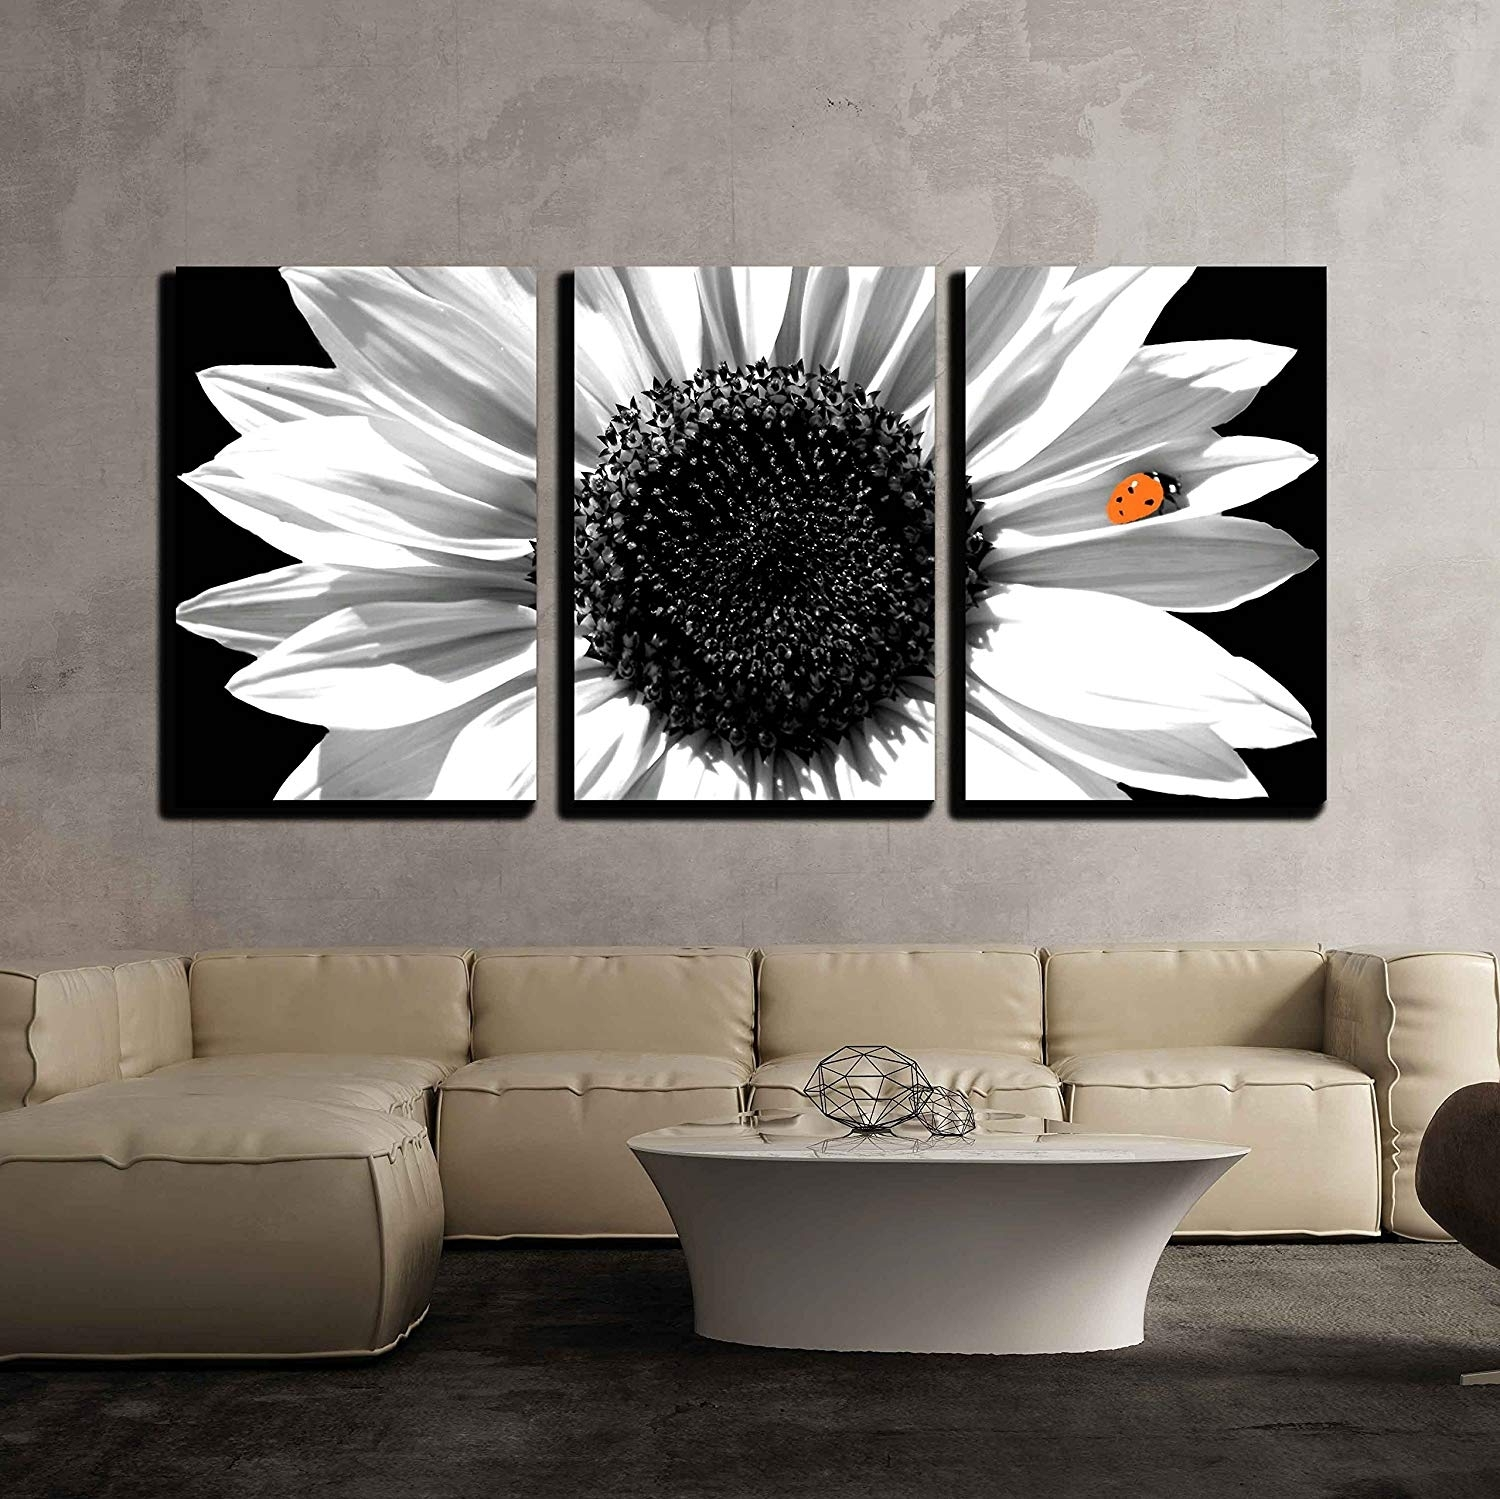 Sunflower In Black And White Wall Decor X3 Panels - Canvas Art | Wall26 for Black Wall Art (Image 19 of 20)